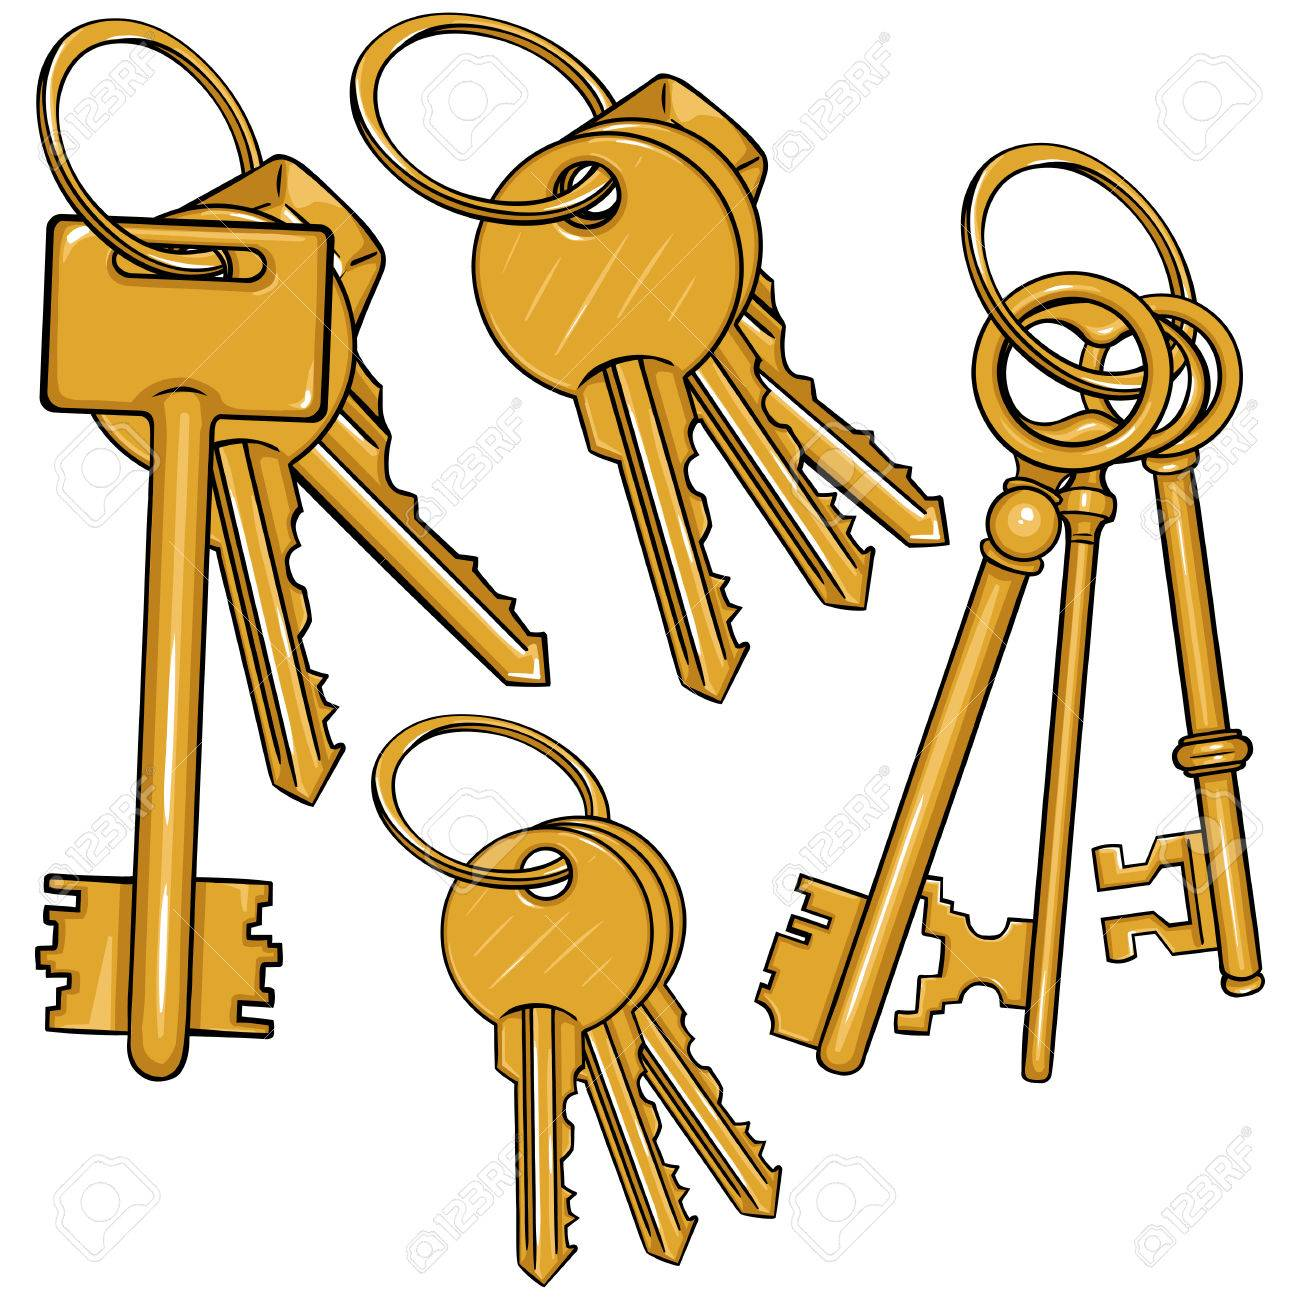 Vector Set Cartoon Bunches of Keys on White Background.